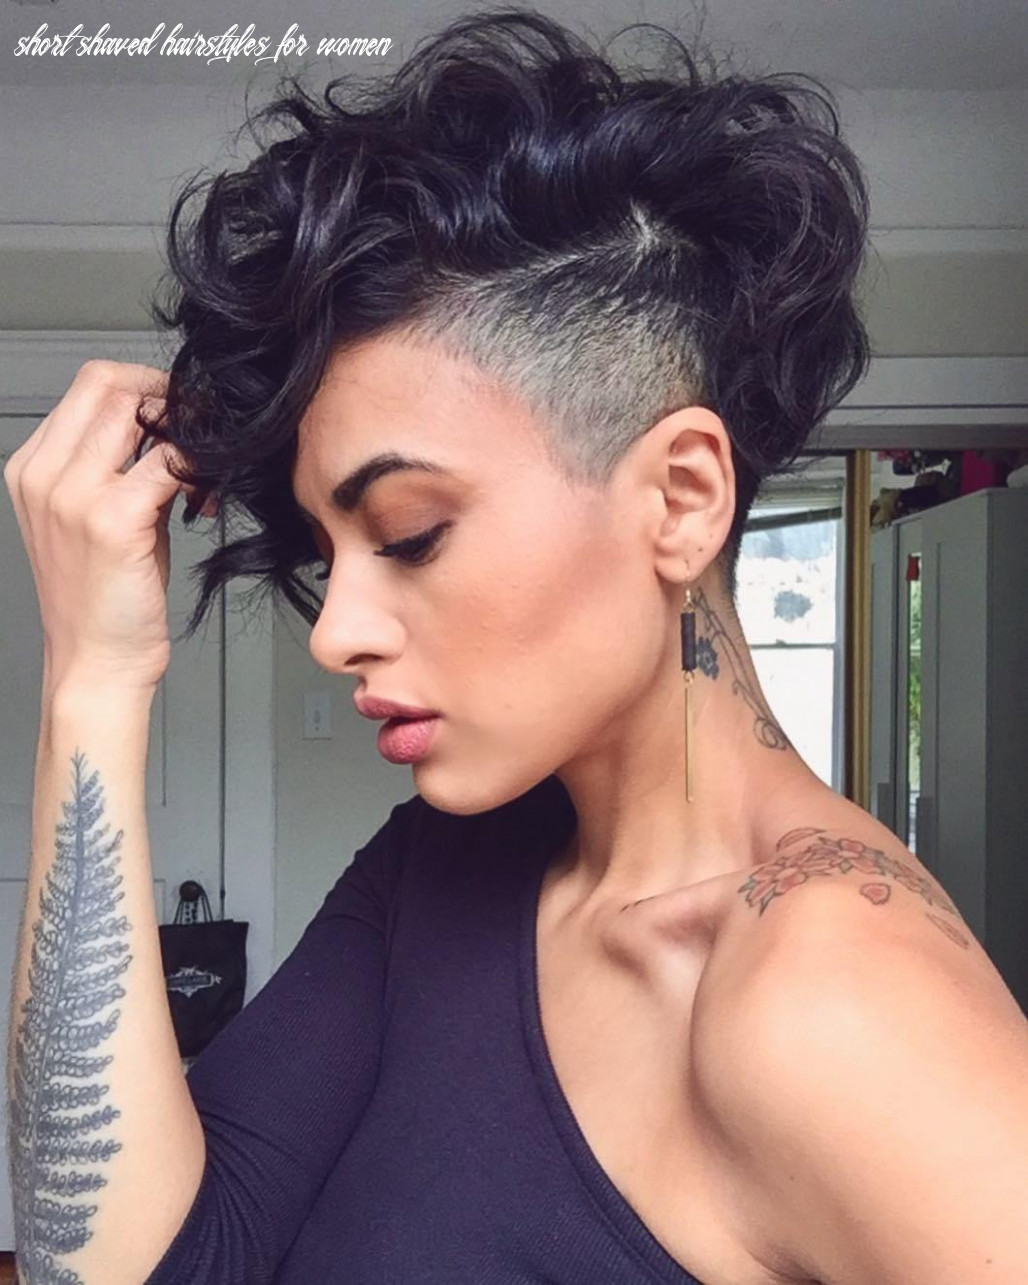 11 bold shaved hairstyles for women | shaved hair designs short shaved hairstyles for women